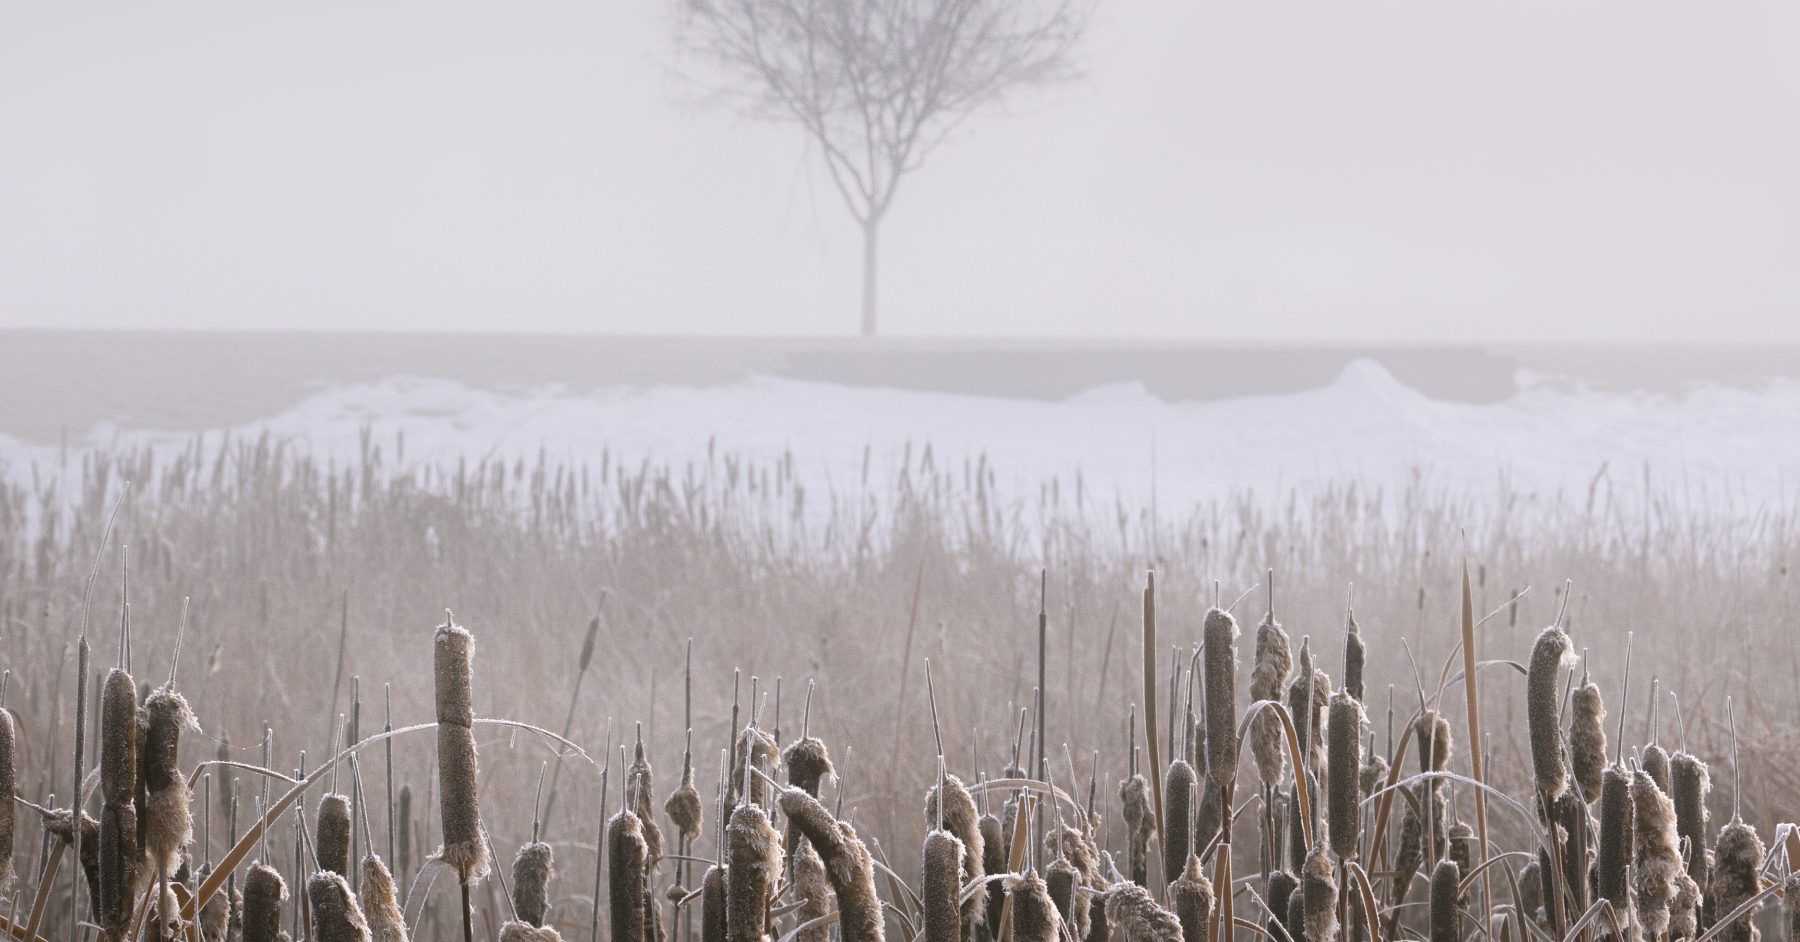 Snow on Cattails on a Foggy Winter Morning #intentionallylost